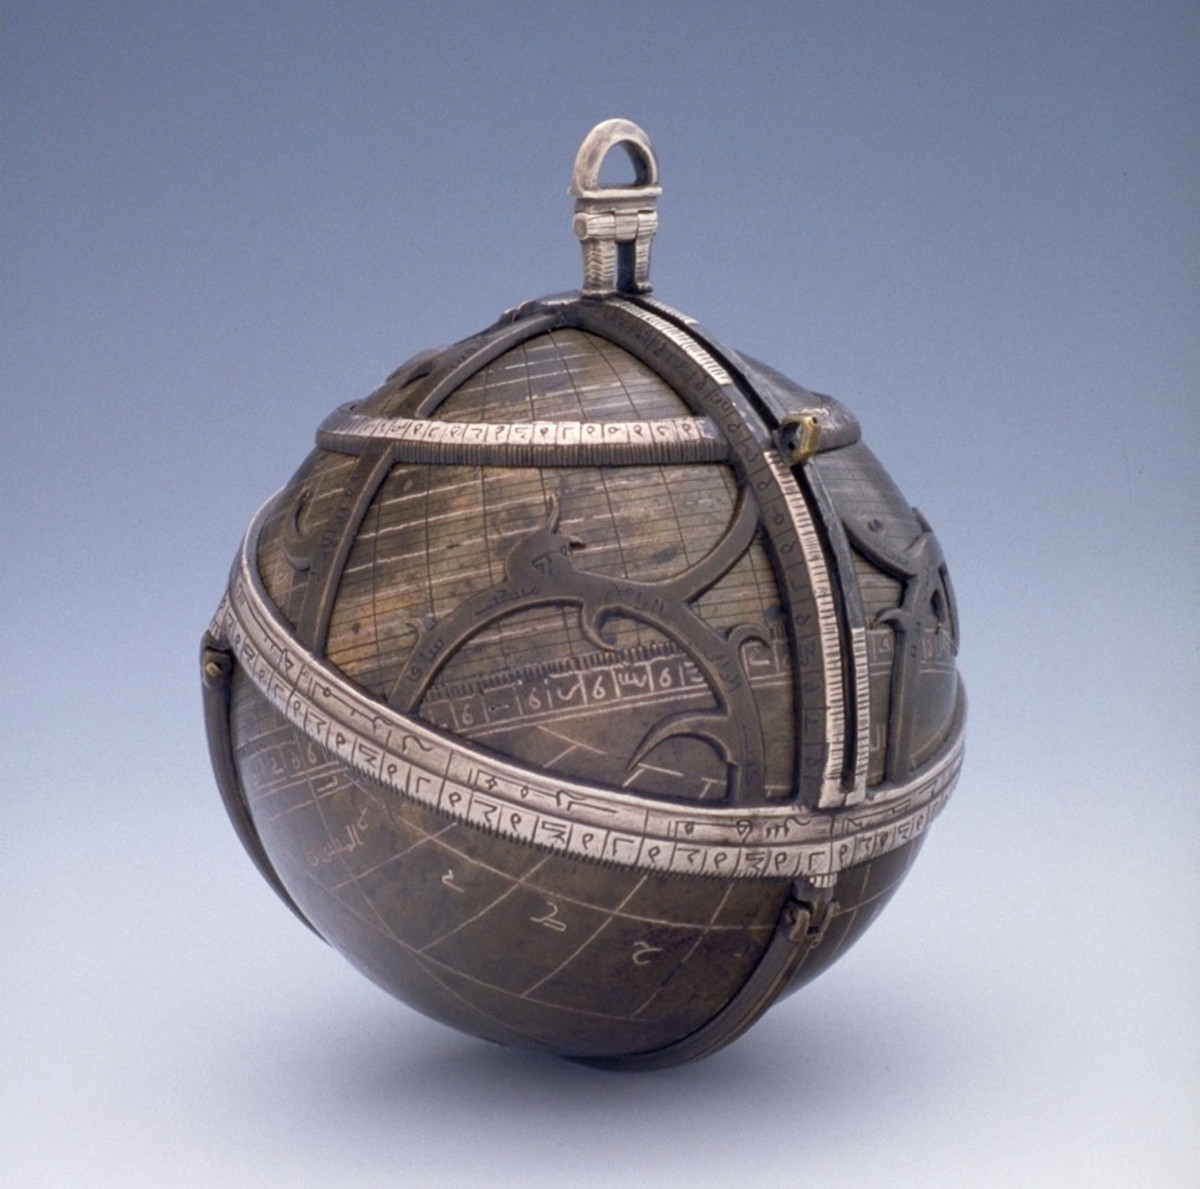 A spherical astrolabe, made of brass/